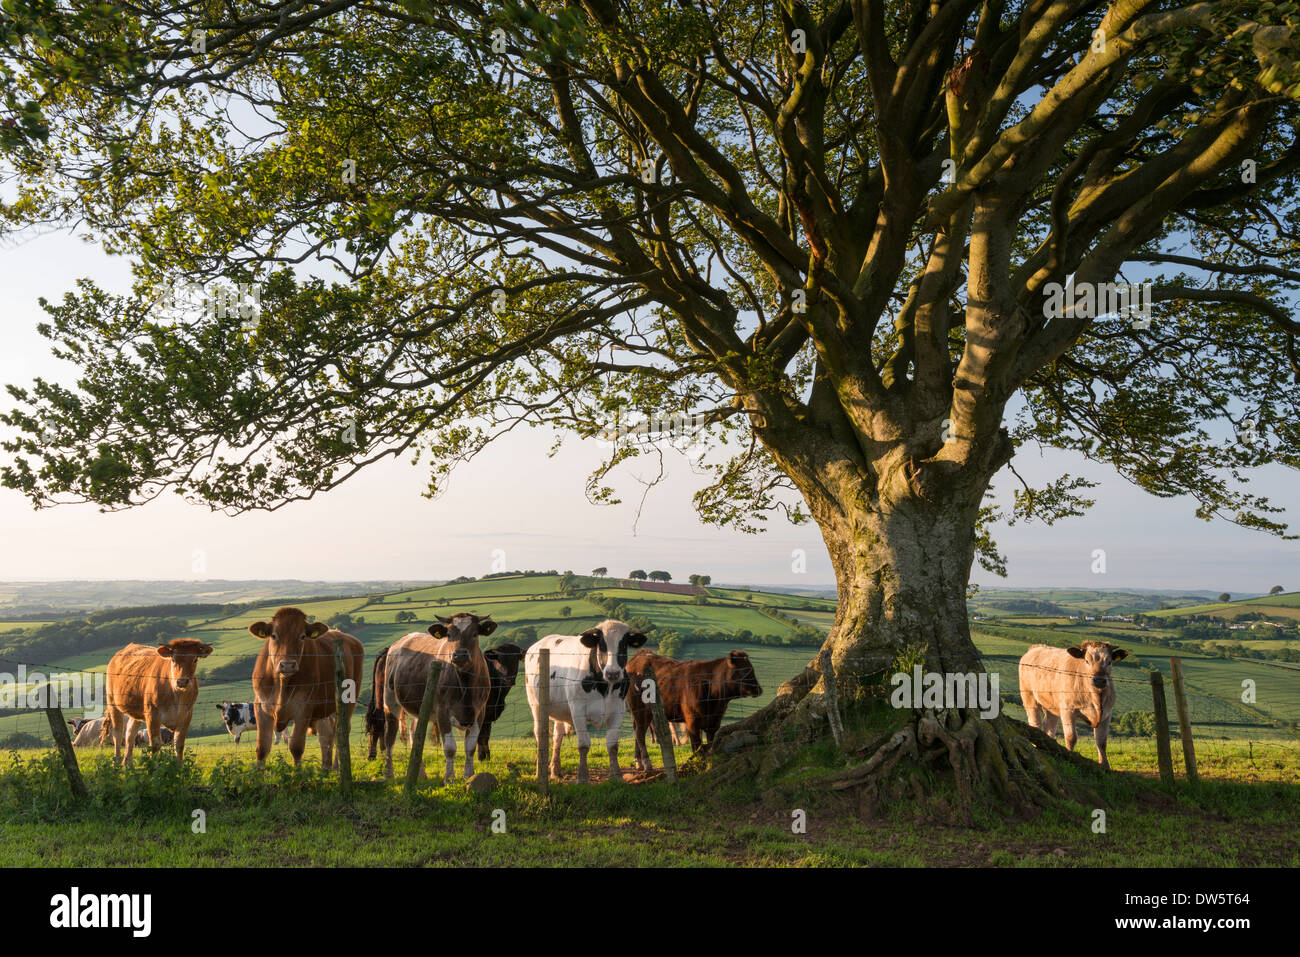 Curious cattle beneath a tree in Devon, England. Summer (June) 2013. - Stock Image